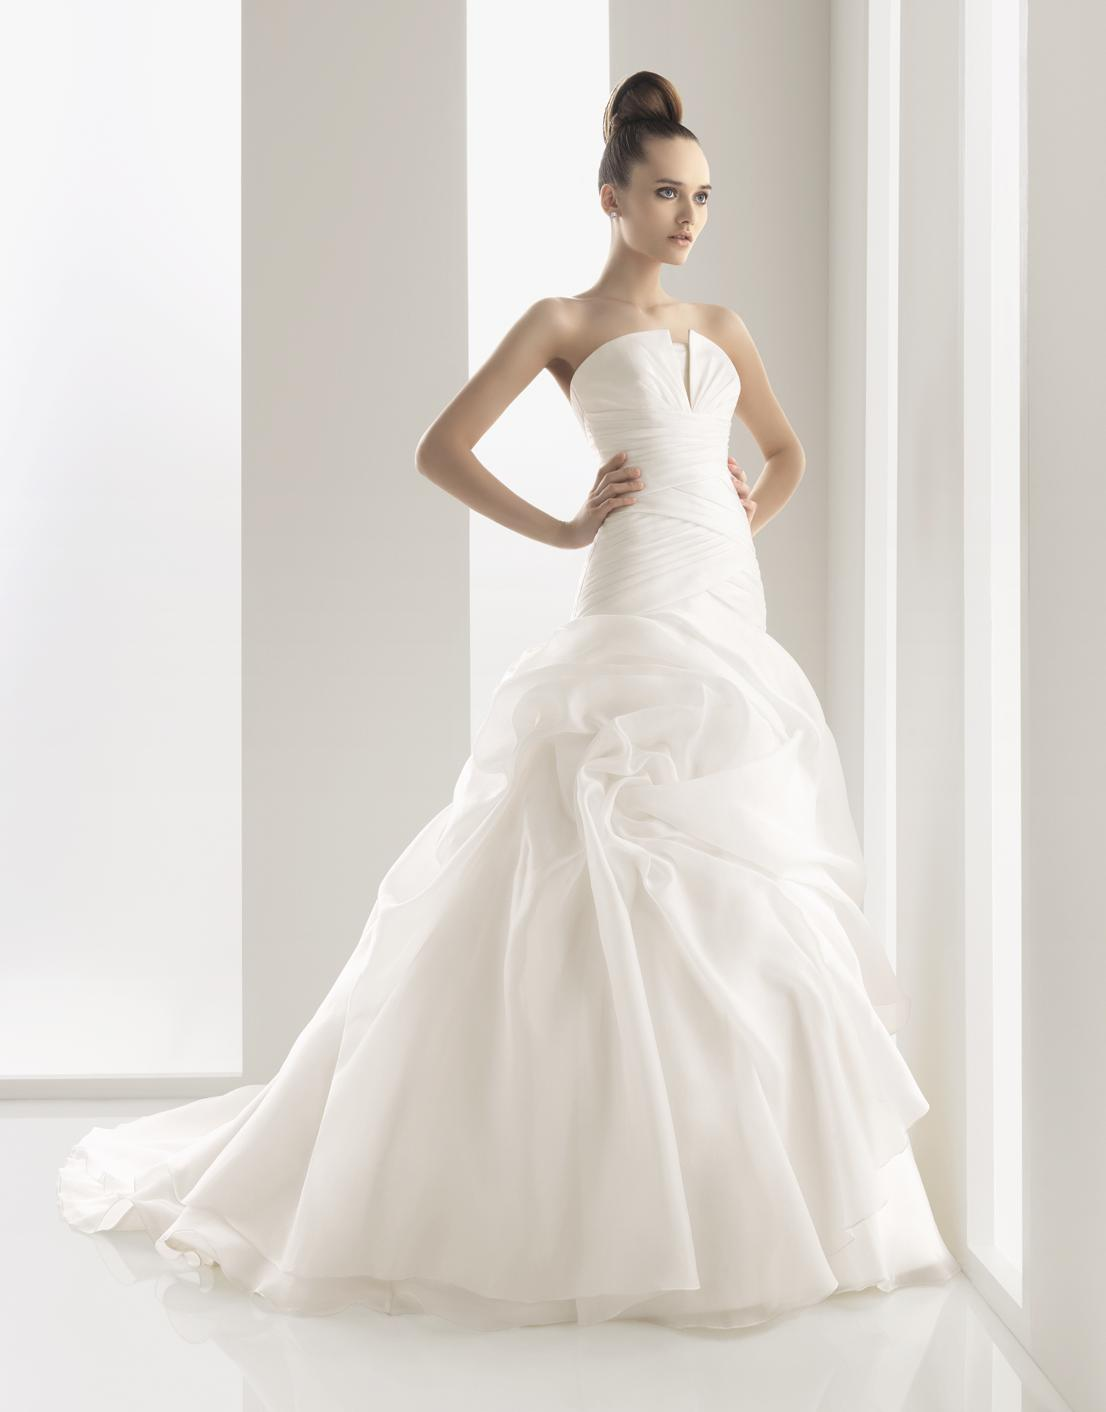 Cheap wedding dresses with elegant style living rooms for New wedding dress styles